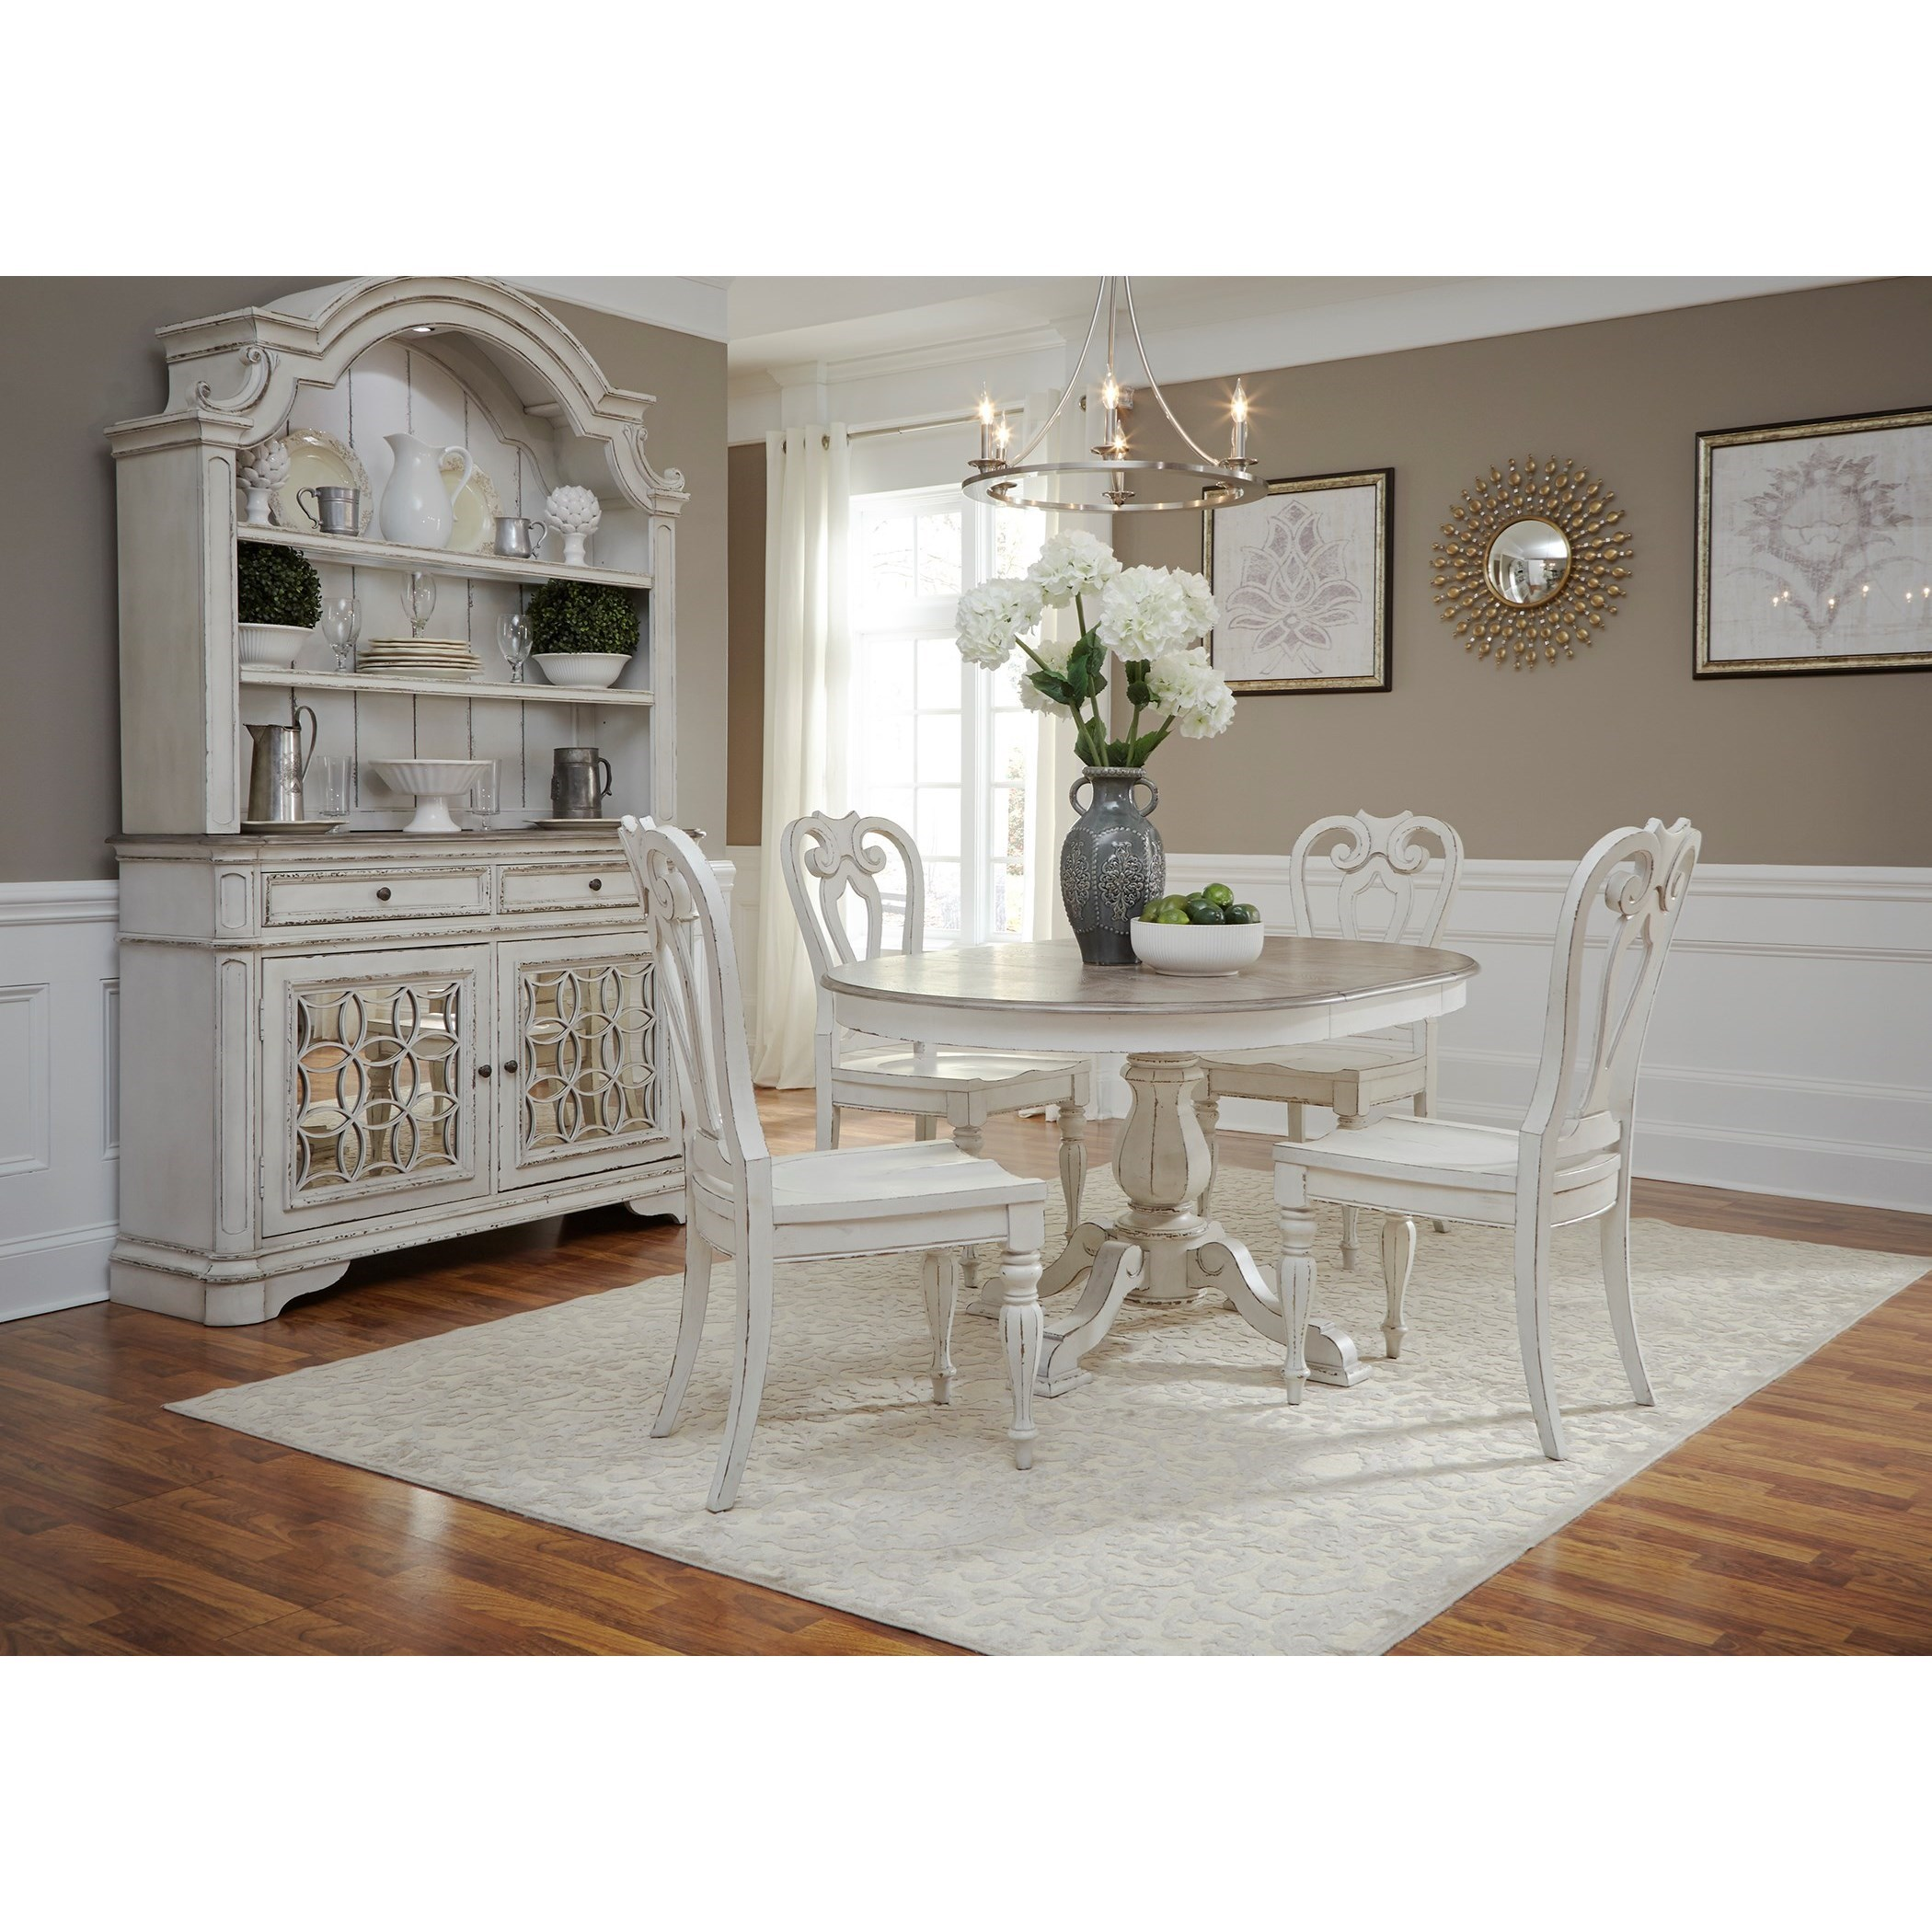 Magnolia Manor Casual Dining Room Group by Liberty Furniture at Northeast Factory Direct